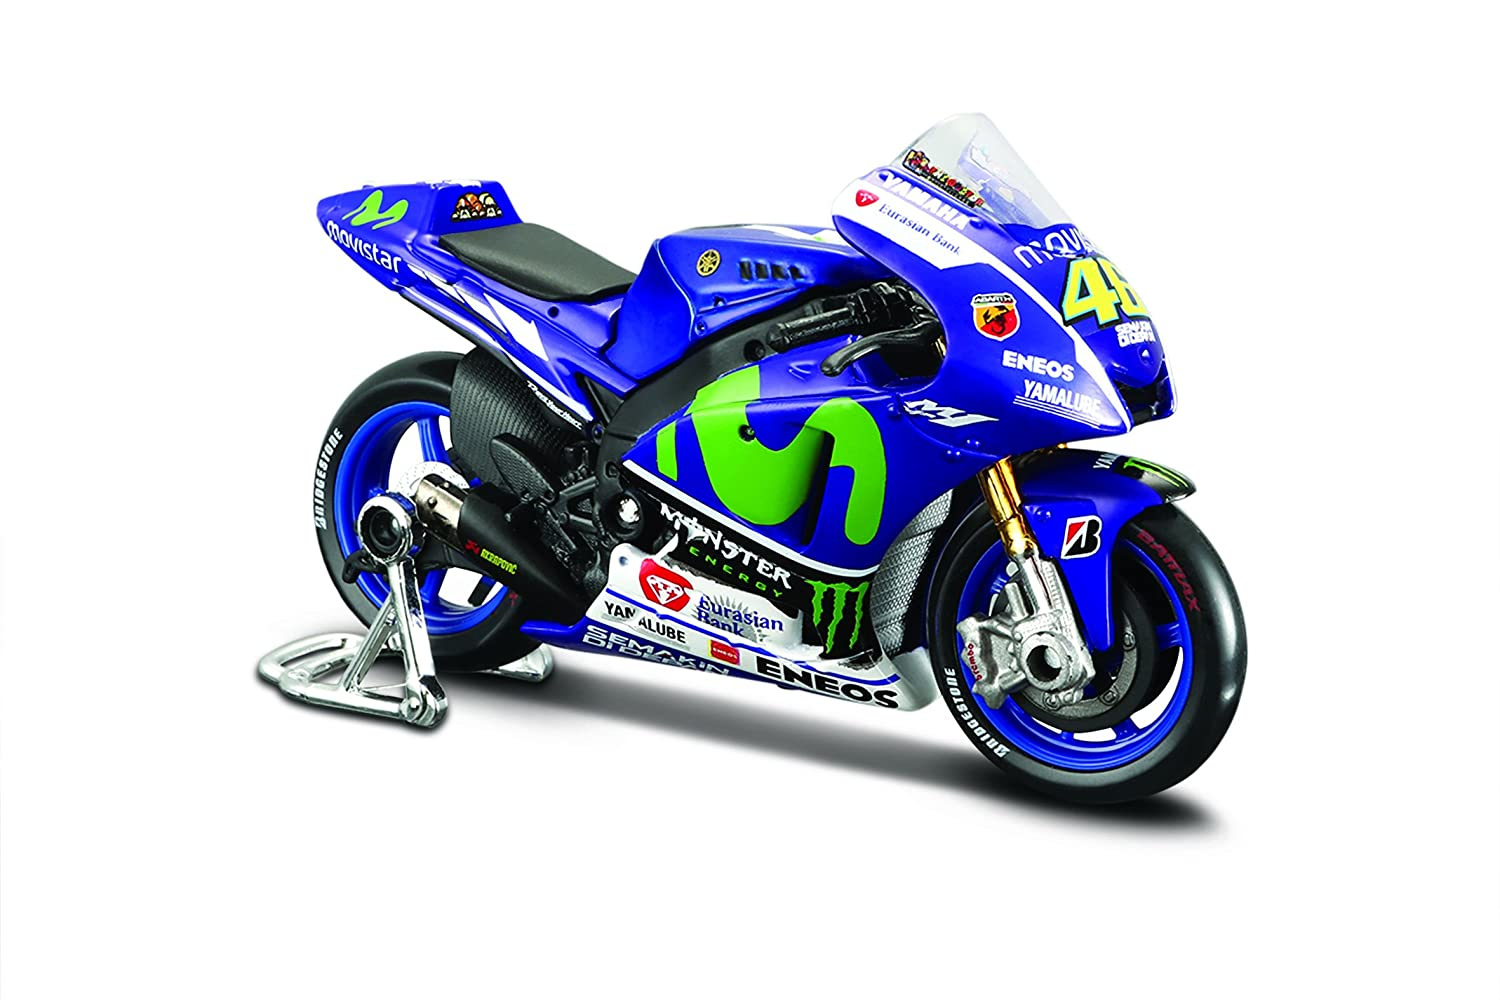 valentino rossi s 2015 fiat yamaha moto gp bike model 1x18 scale new ebay. Black Bedroom Furniture Sets. Home Design Ideas